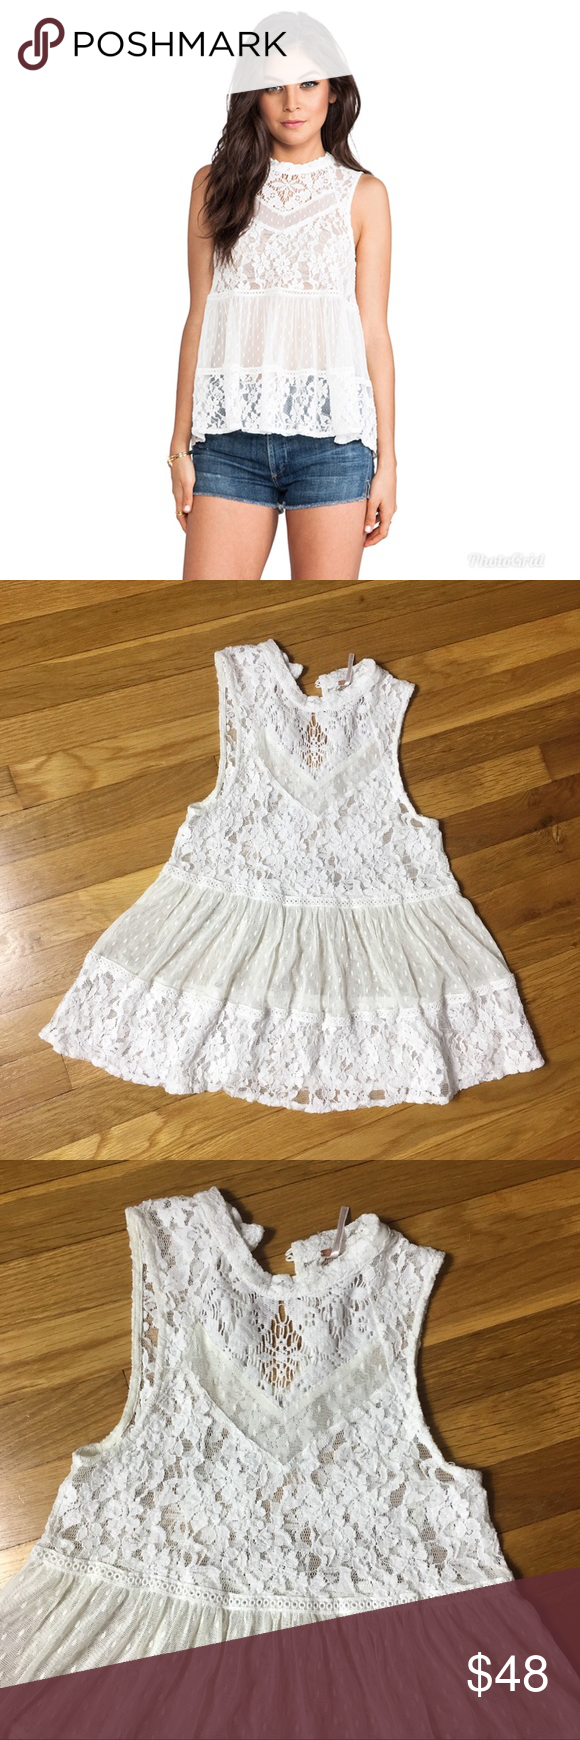 7ab9981c60d908 Free People ladybird lace tank size small Free People ladybird lace /  crochet sheer tank top with a mock neck, babydoll design, trendy flowy top  that you ...